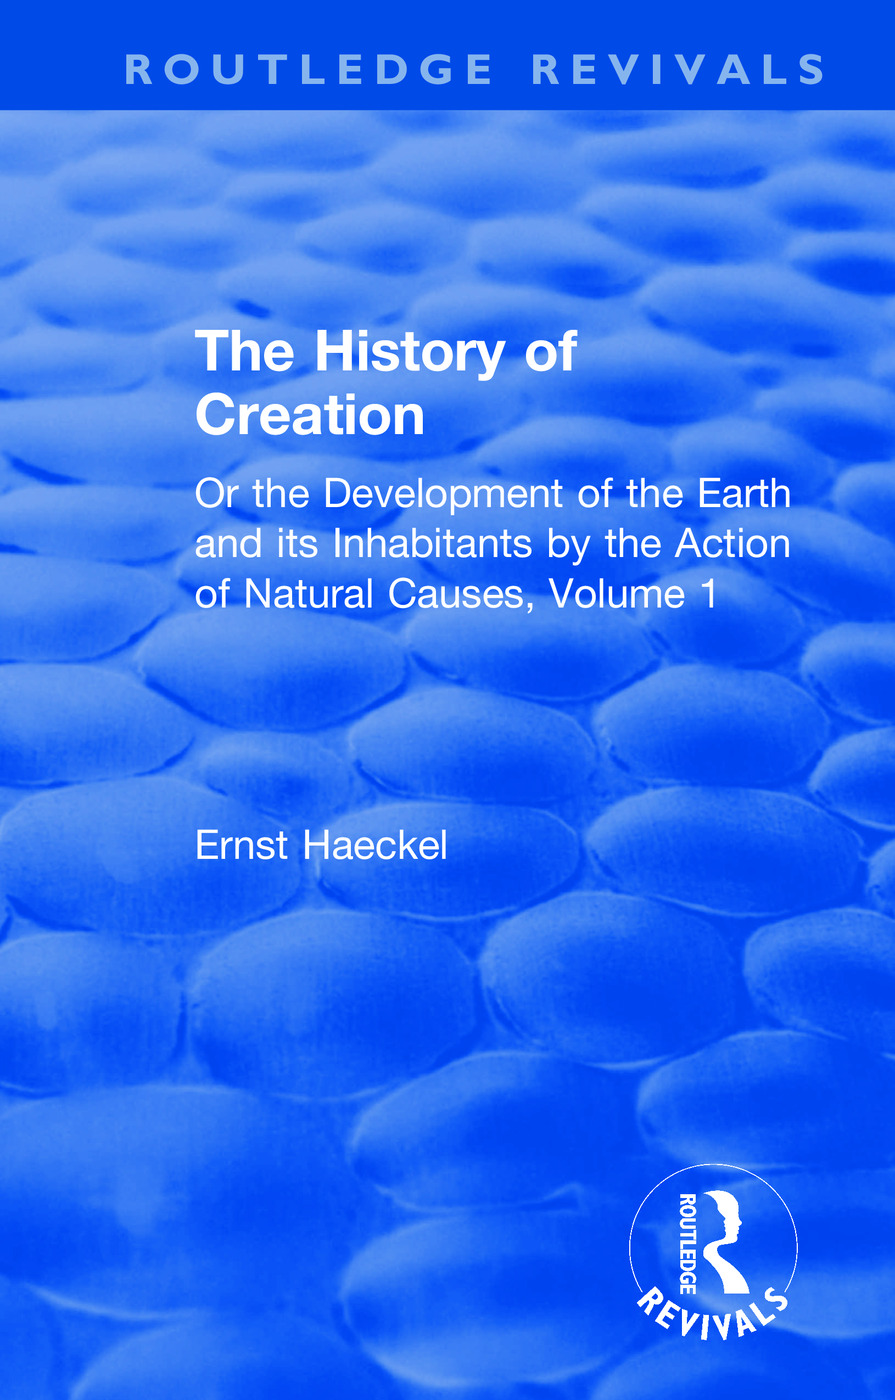 The History of Creation: Or the Development of the Earth and its Inhabitants by the Action of Natural Causes, Volume 1 book cover